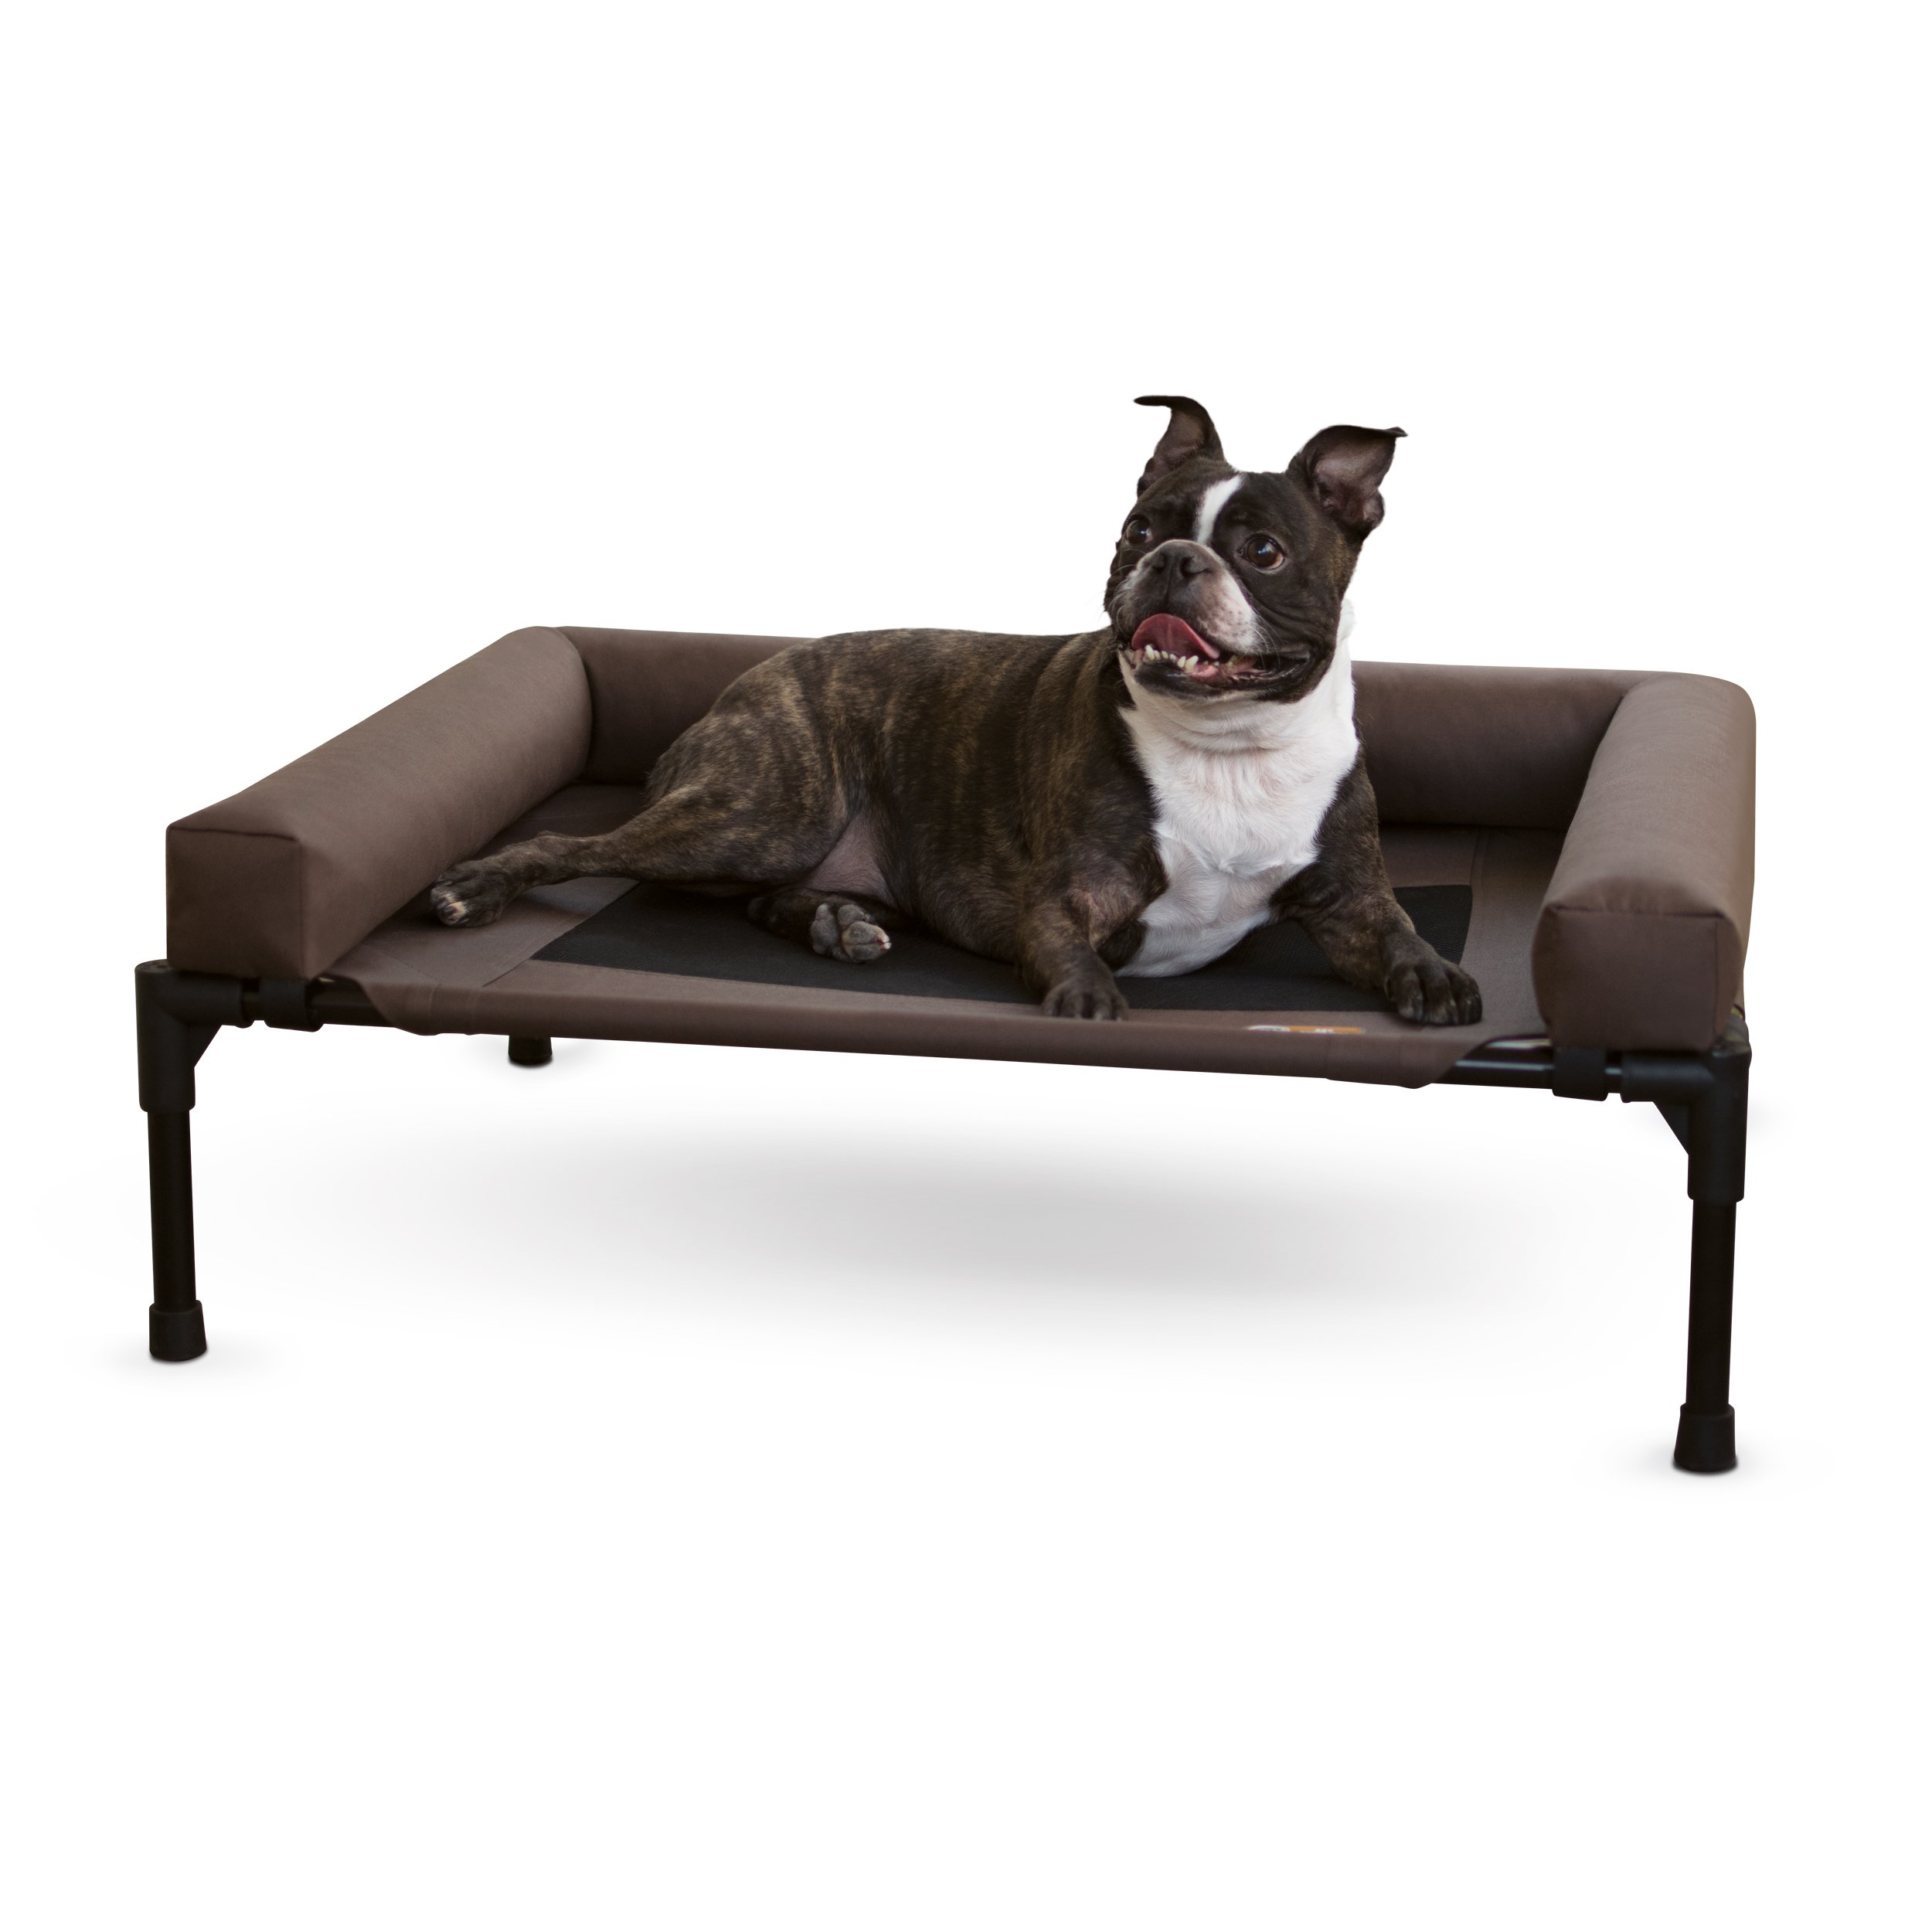 K&H Pet Products Original Bolster Pet Cot Elevated Pet Bed Medium Chocolate/Mesh 25'' x 32'' x 7''